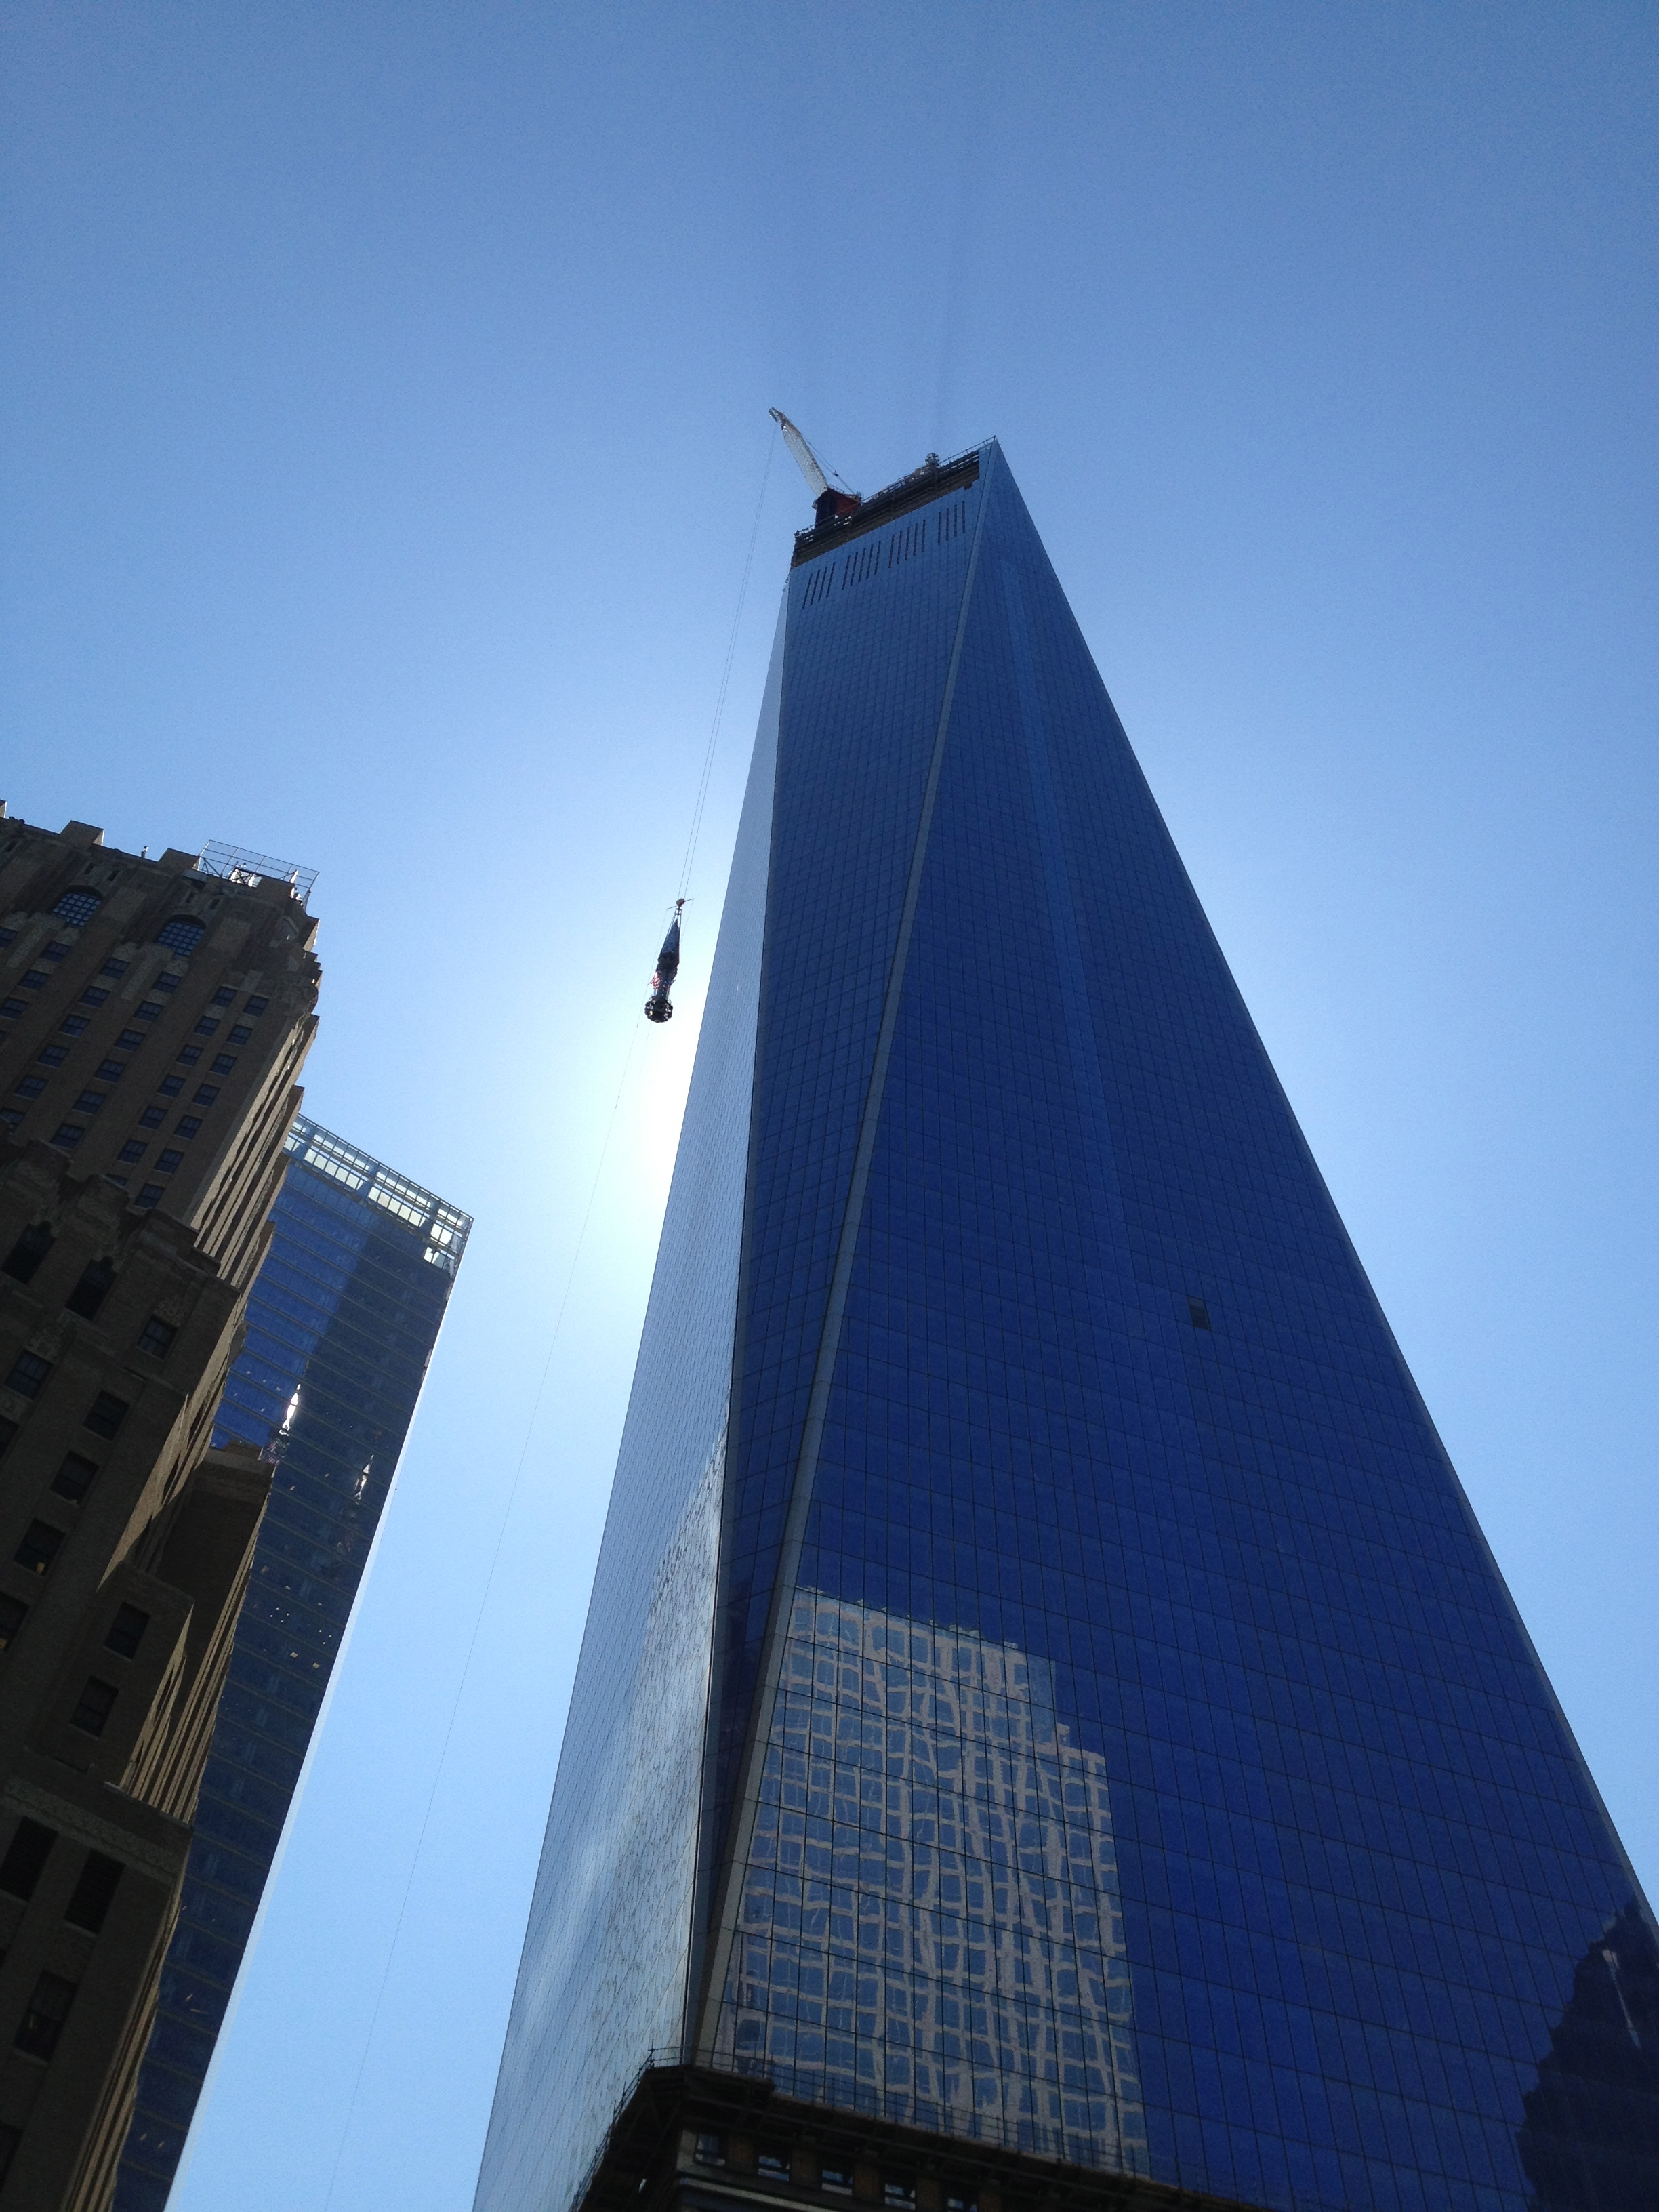 We watched the spire travel to the top of the building.